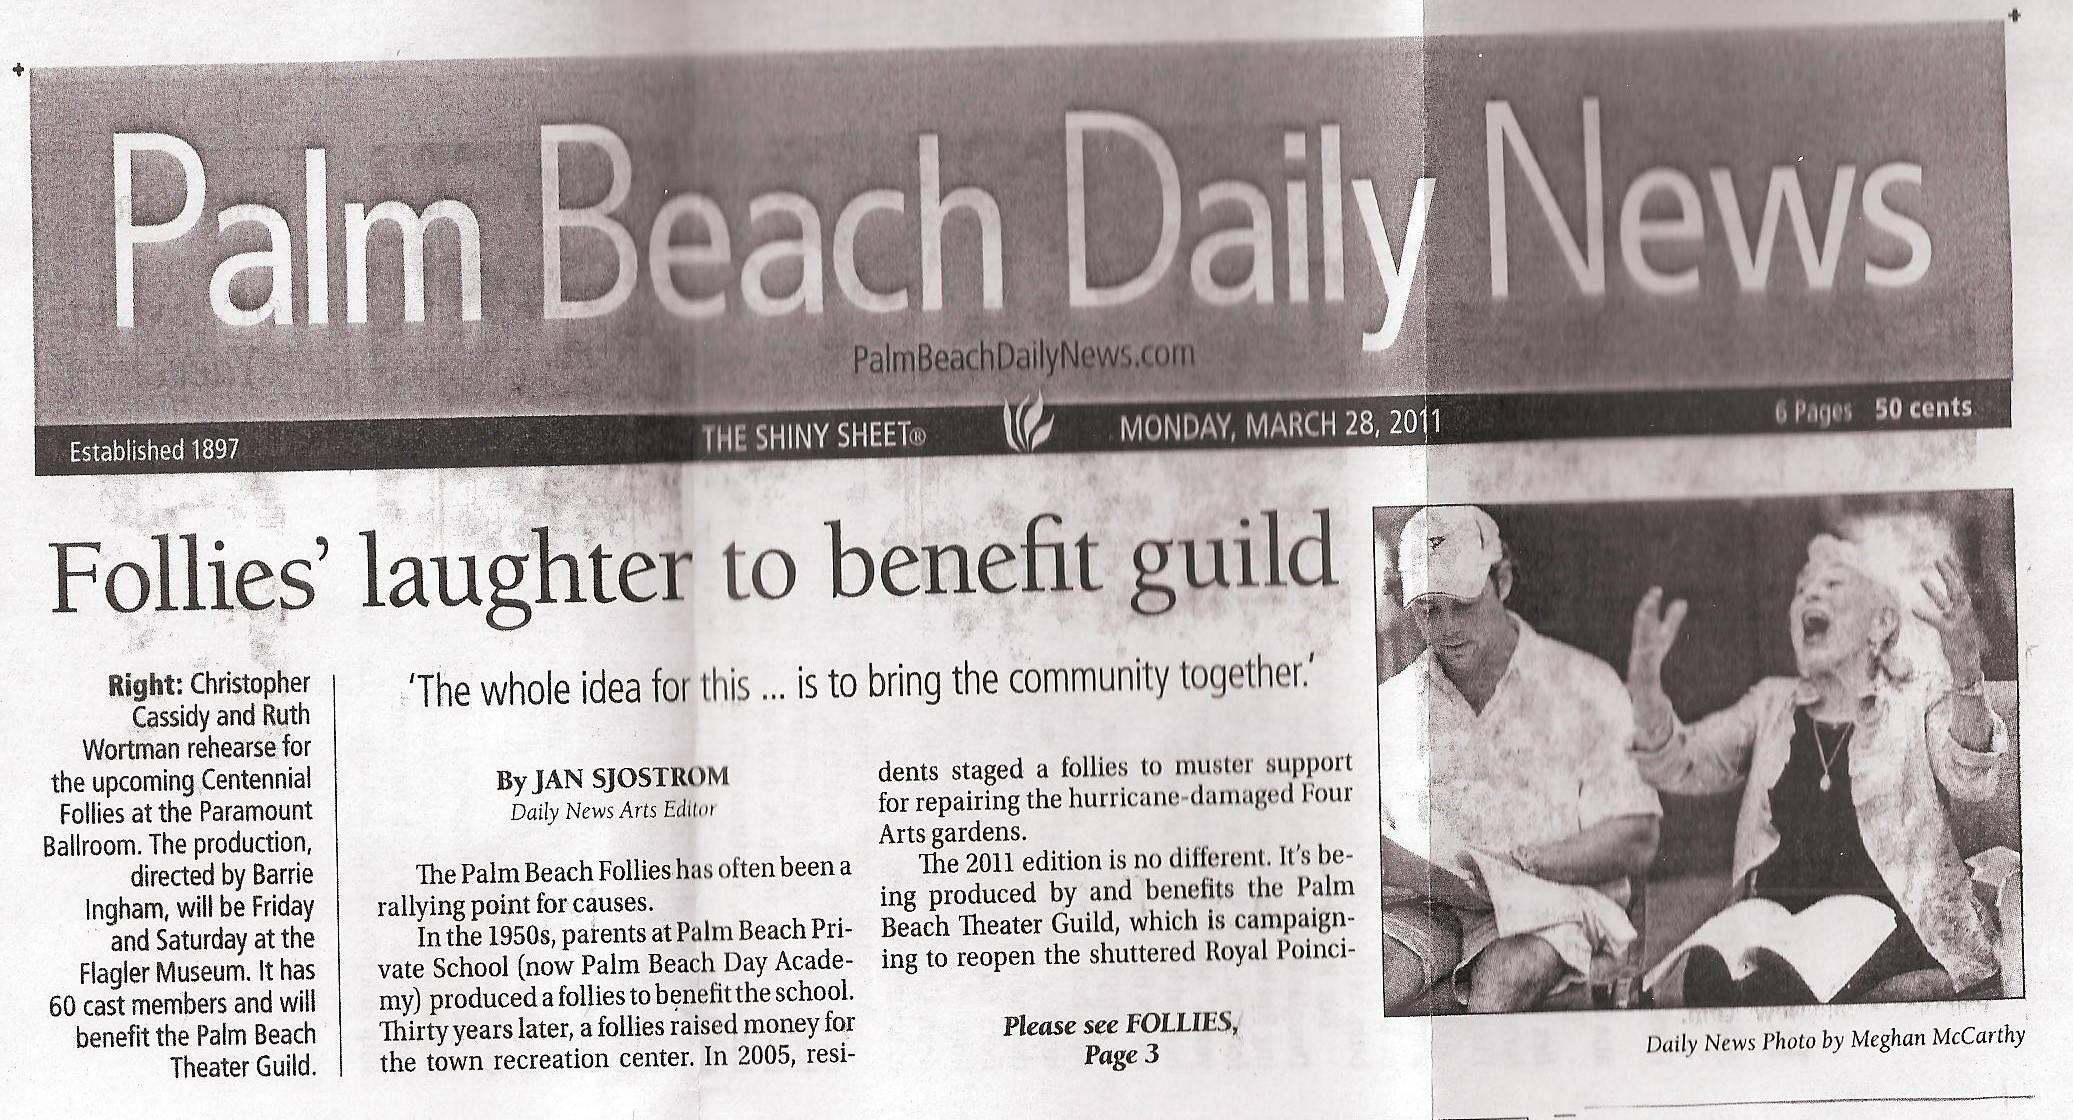 FOLLIES' LAUGHTER TO BENEFIT GUILD PB DAILY NEWS